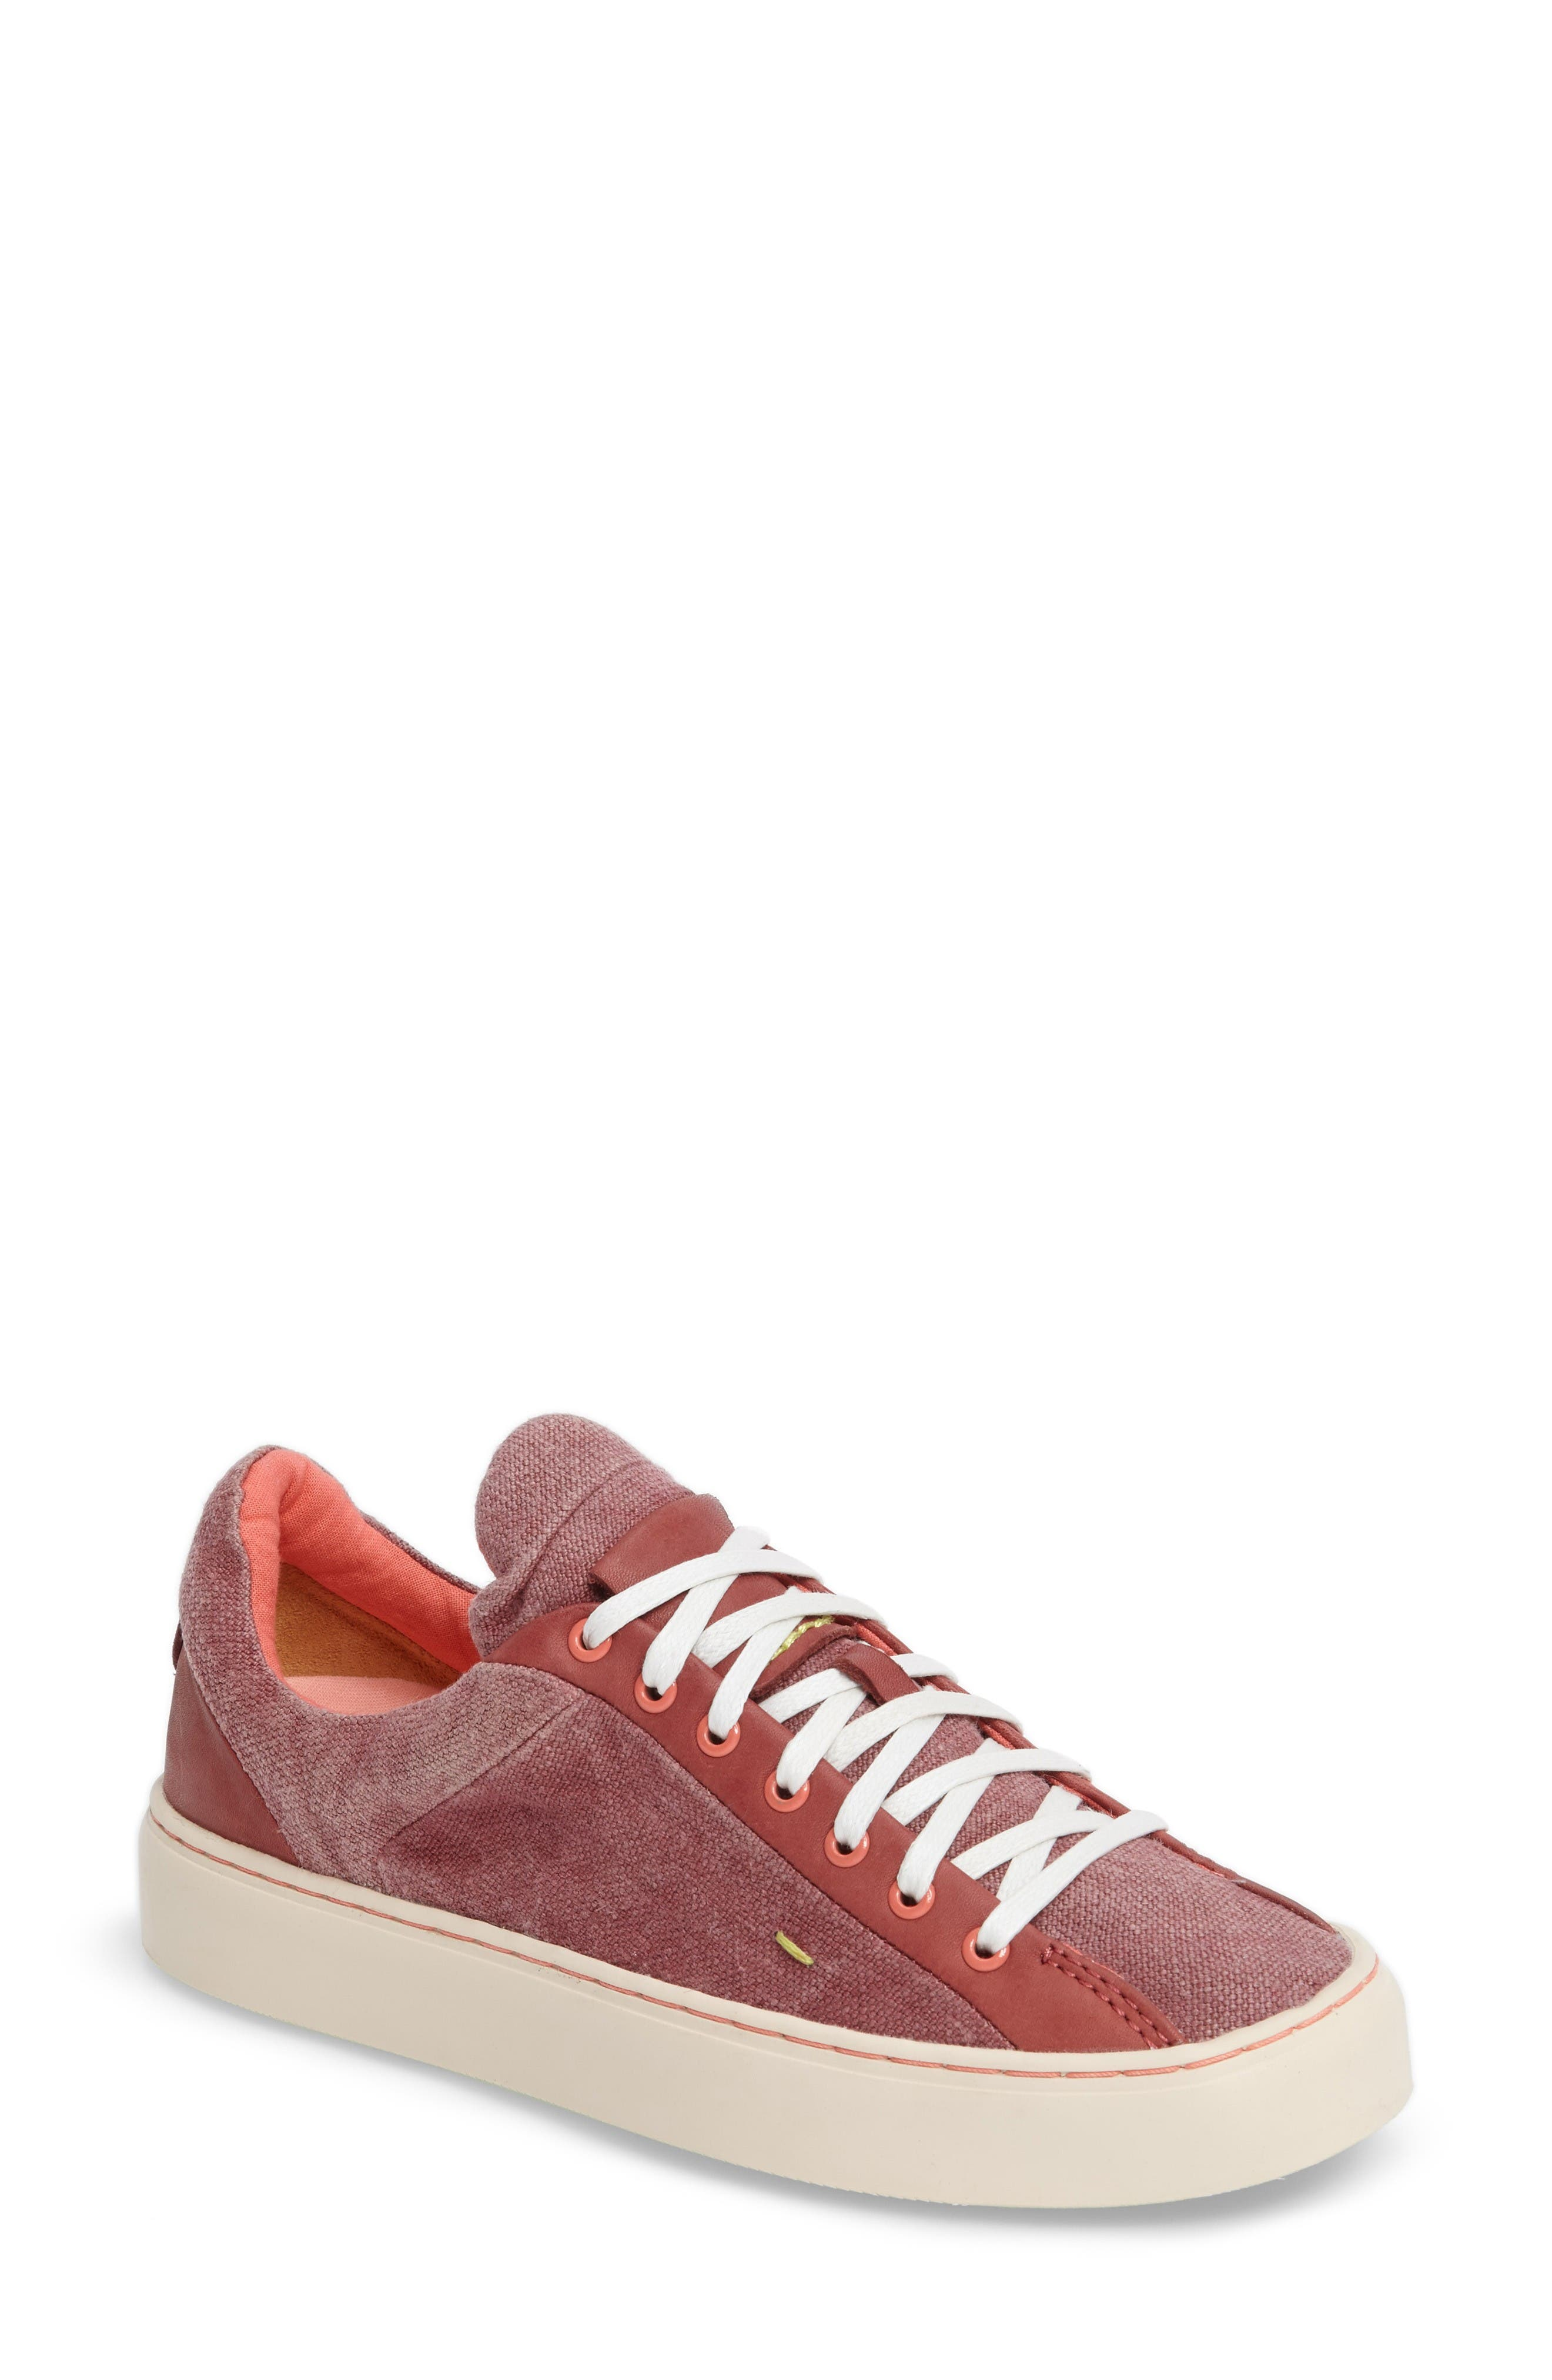 Somerville Sneaker,                         Main,                         color, Sandalwood Fabric